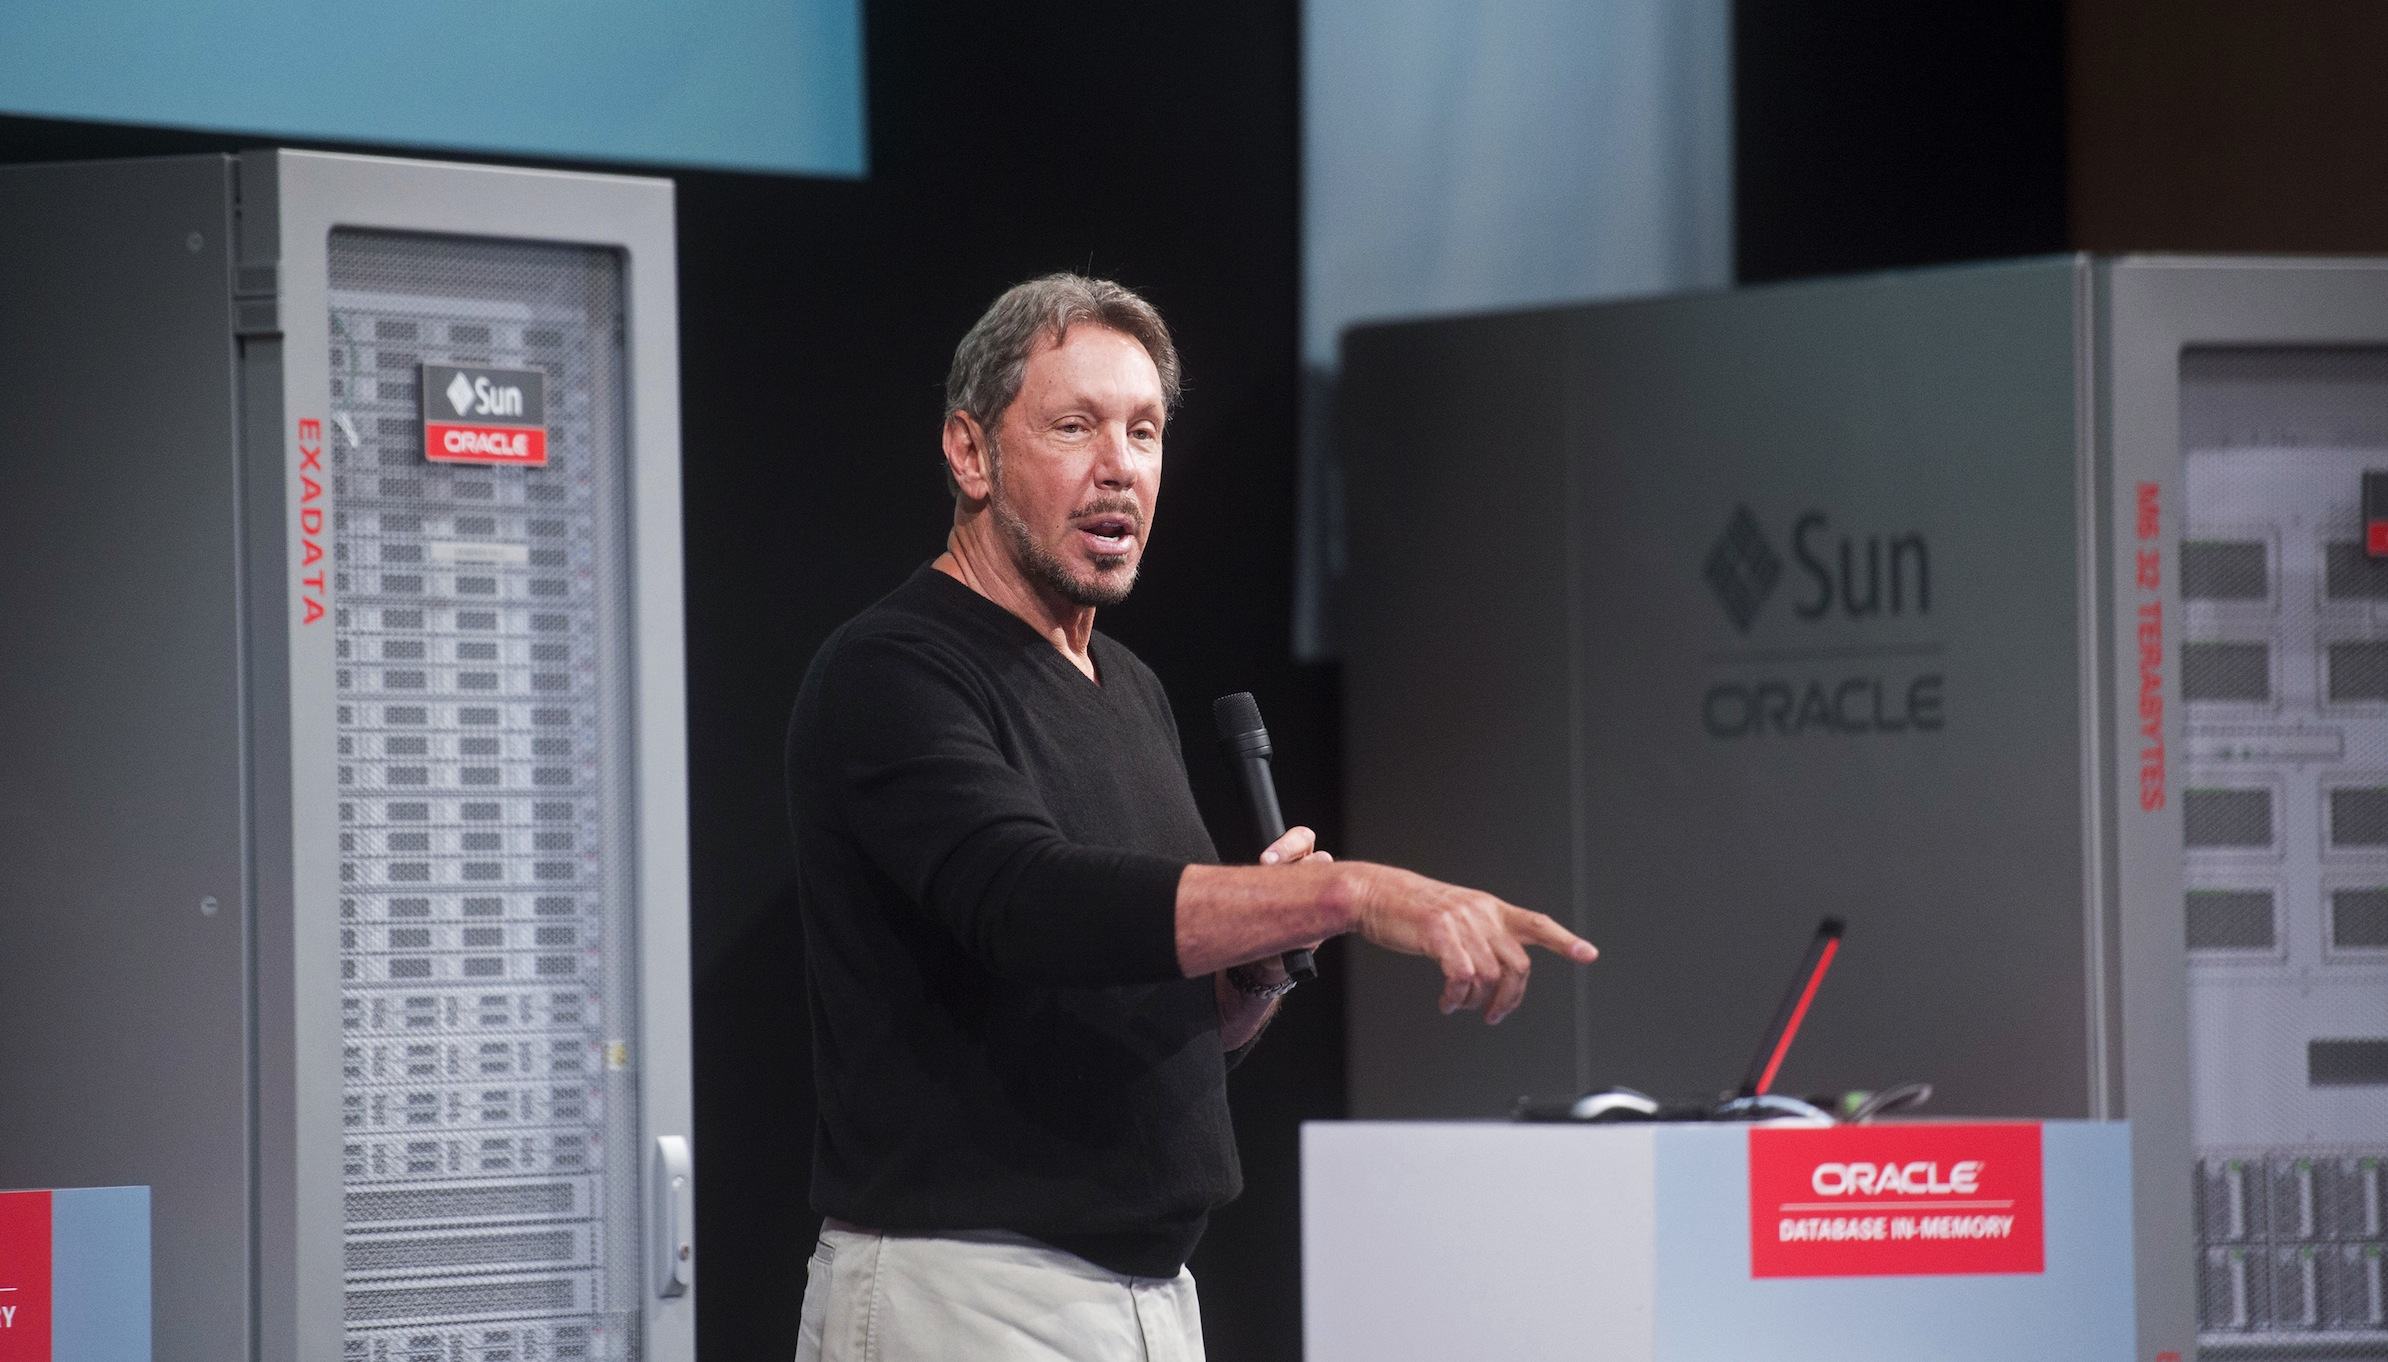 "Oracle Corp Chief Executive Larry Ellison introduces the Oracle Database In-Memory during a launch event at the company's headquarters in Redwood Shores, California June 10, 2014. Ellison on Tuesday launched the ""in-memory"" technology for speeding up data analysis in a bid to beef up demand for his company's software products. The in-memory features, which Oracle has been talking about for months, allow for faster database queries and transactions as companies collect, store and analyze growing amounts of information across the Internet.  REUTERS/Noah Berger  (UNITED STATES - Tags: SCIENCE TECHNOLOGY BUSINESS) - RTR3T46J"